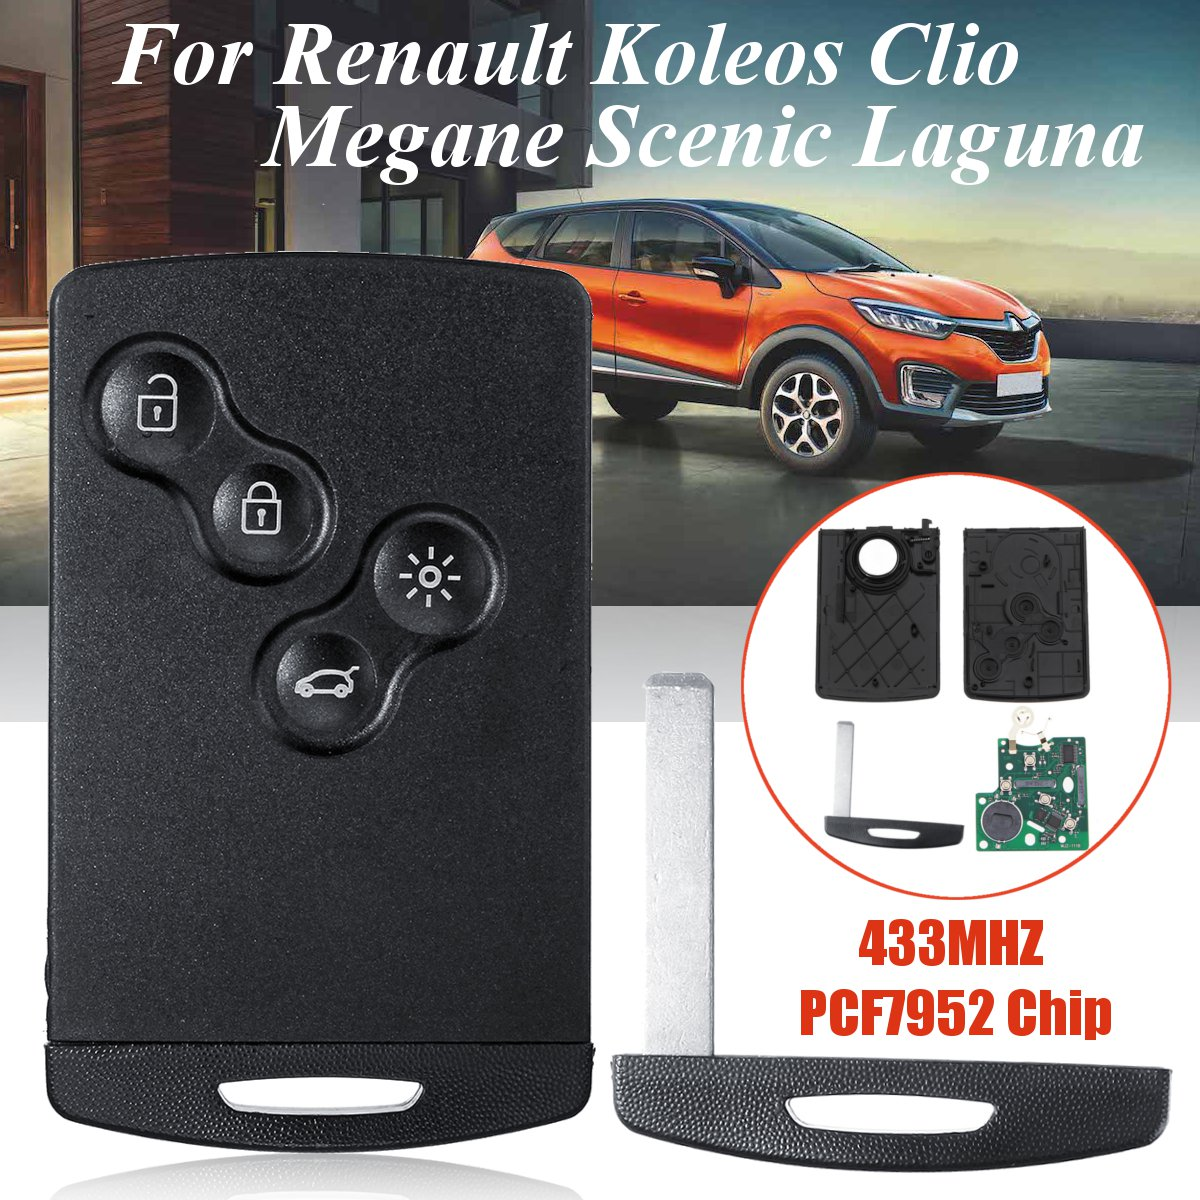 4 Button Replacement Smart Key Card Case Fob For Renault Koleos Megane Scenic